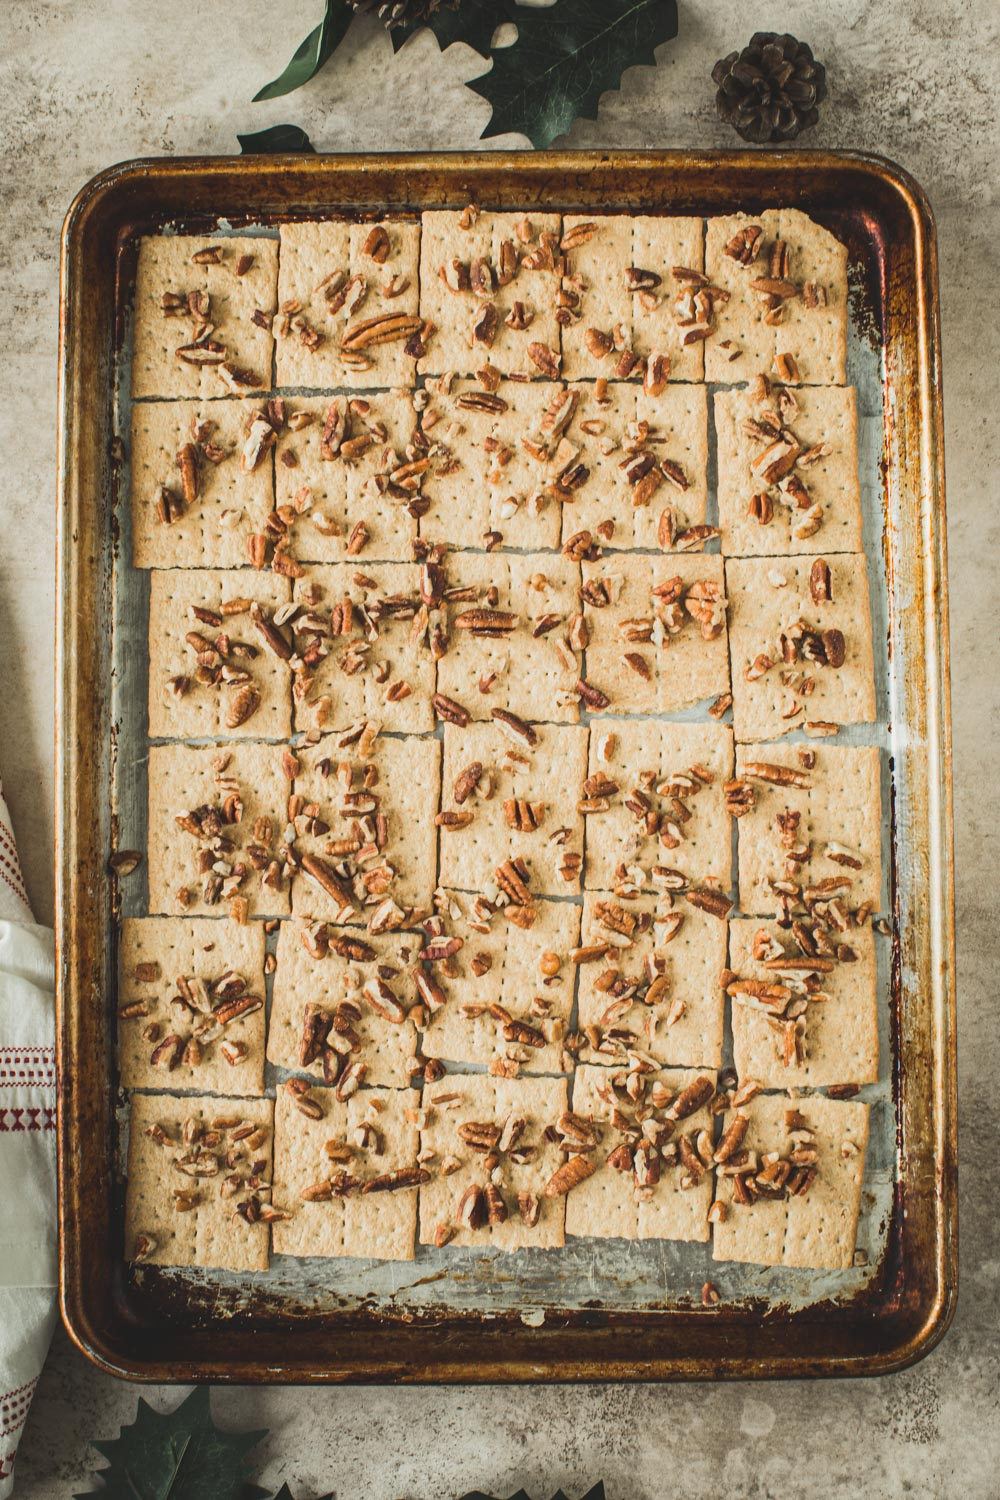 Graham Crackers covered in pecans on a rimmed baking sheet.